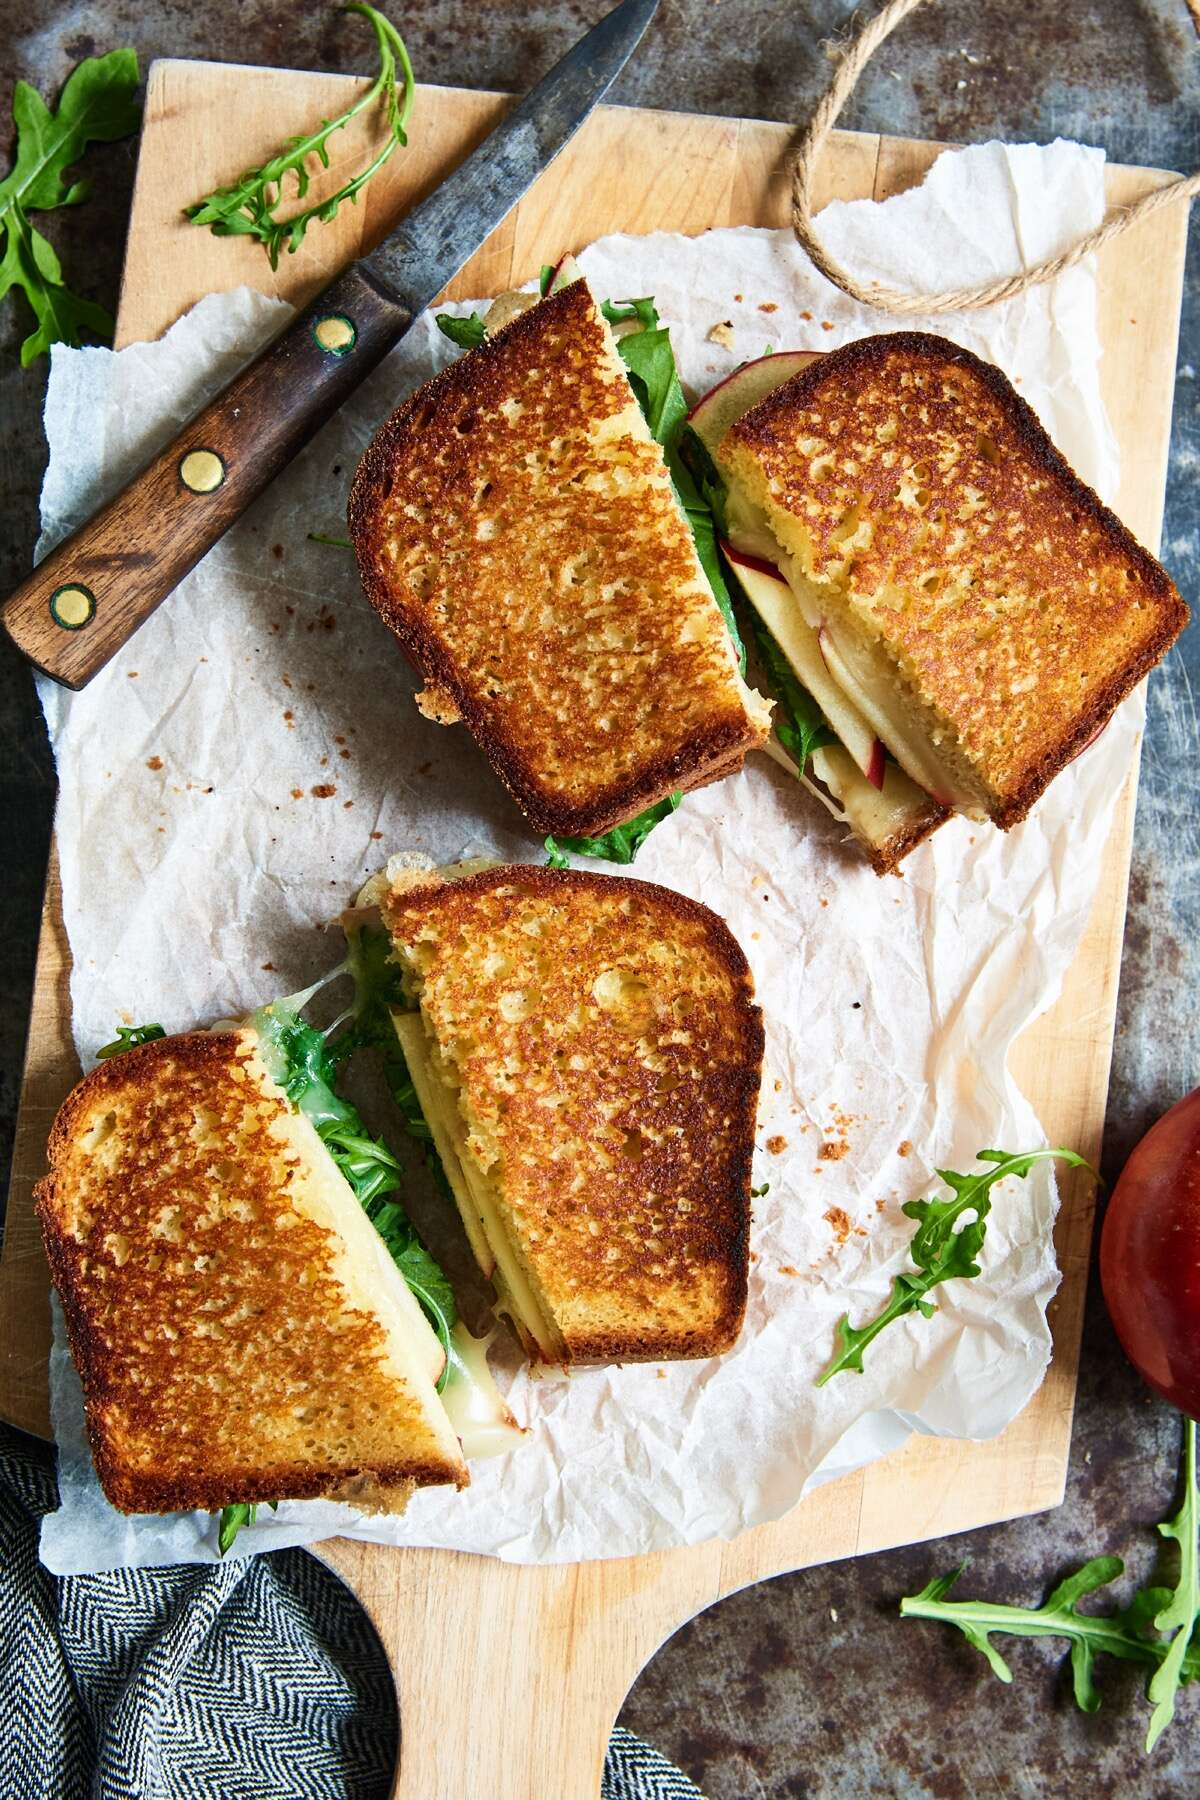 Apple, cheese and arugula sandwiches made on toasted Gluten-Free Toasting and Sandwich Bread.